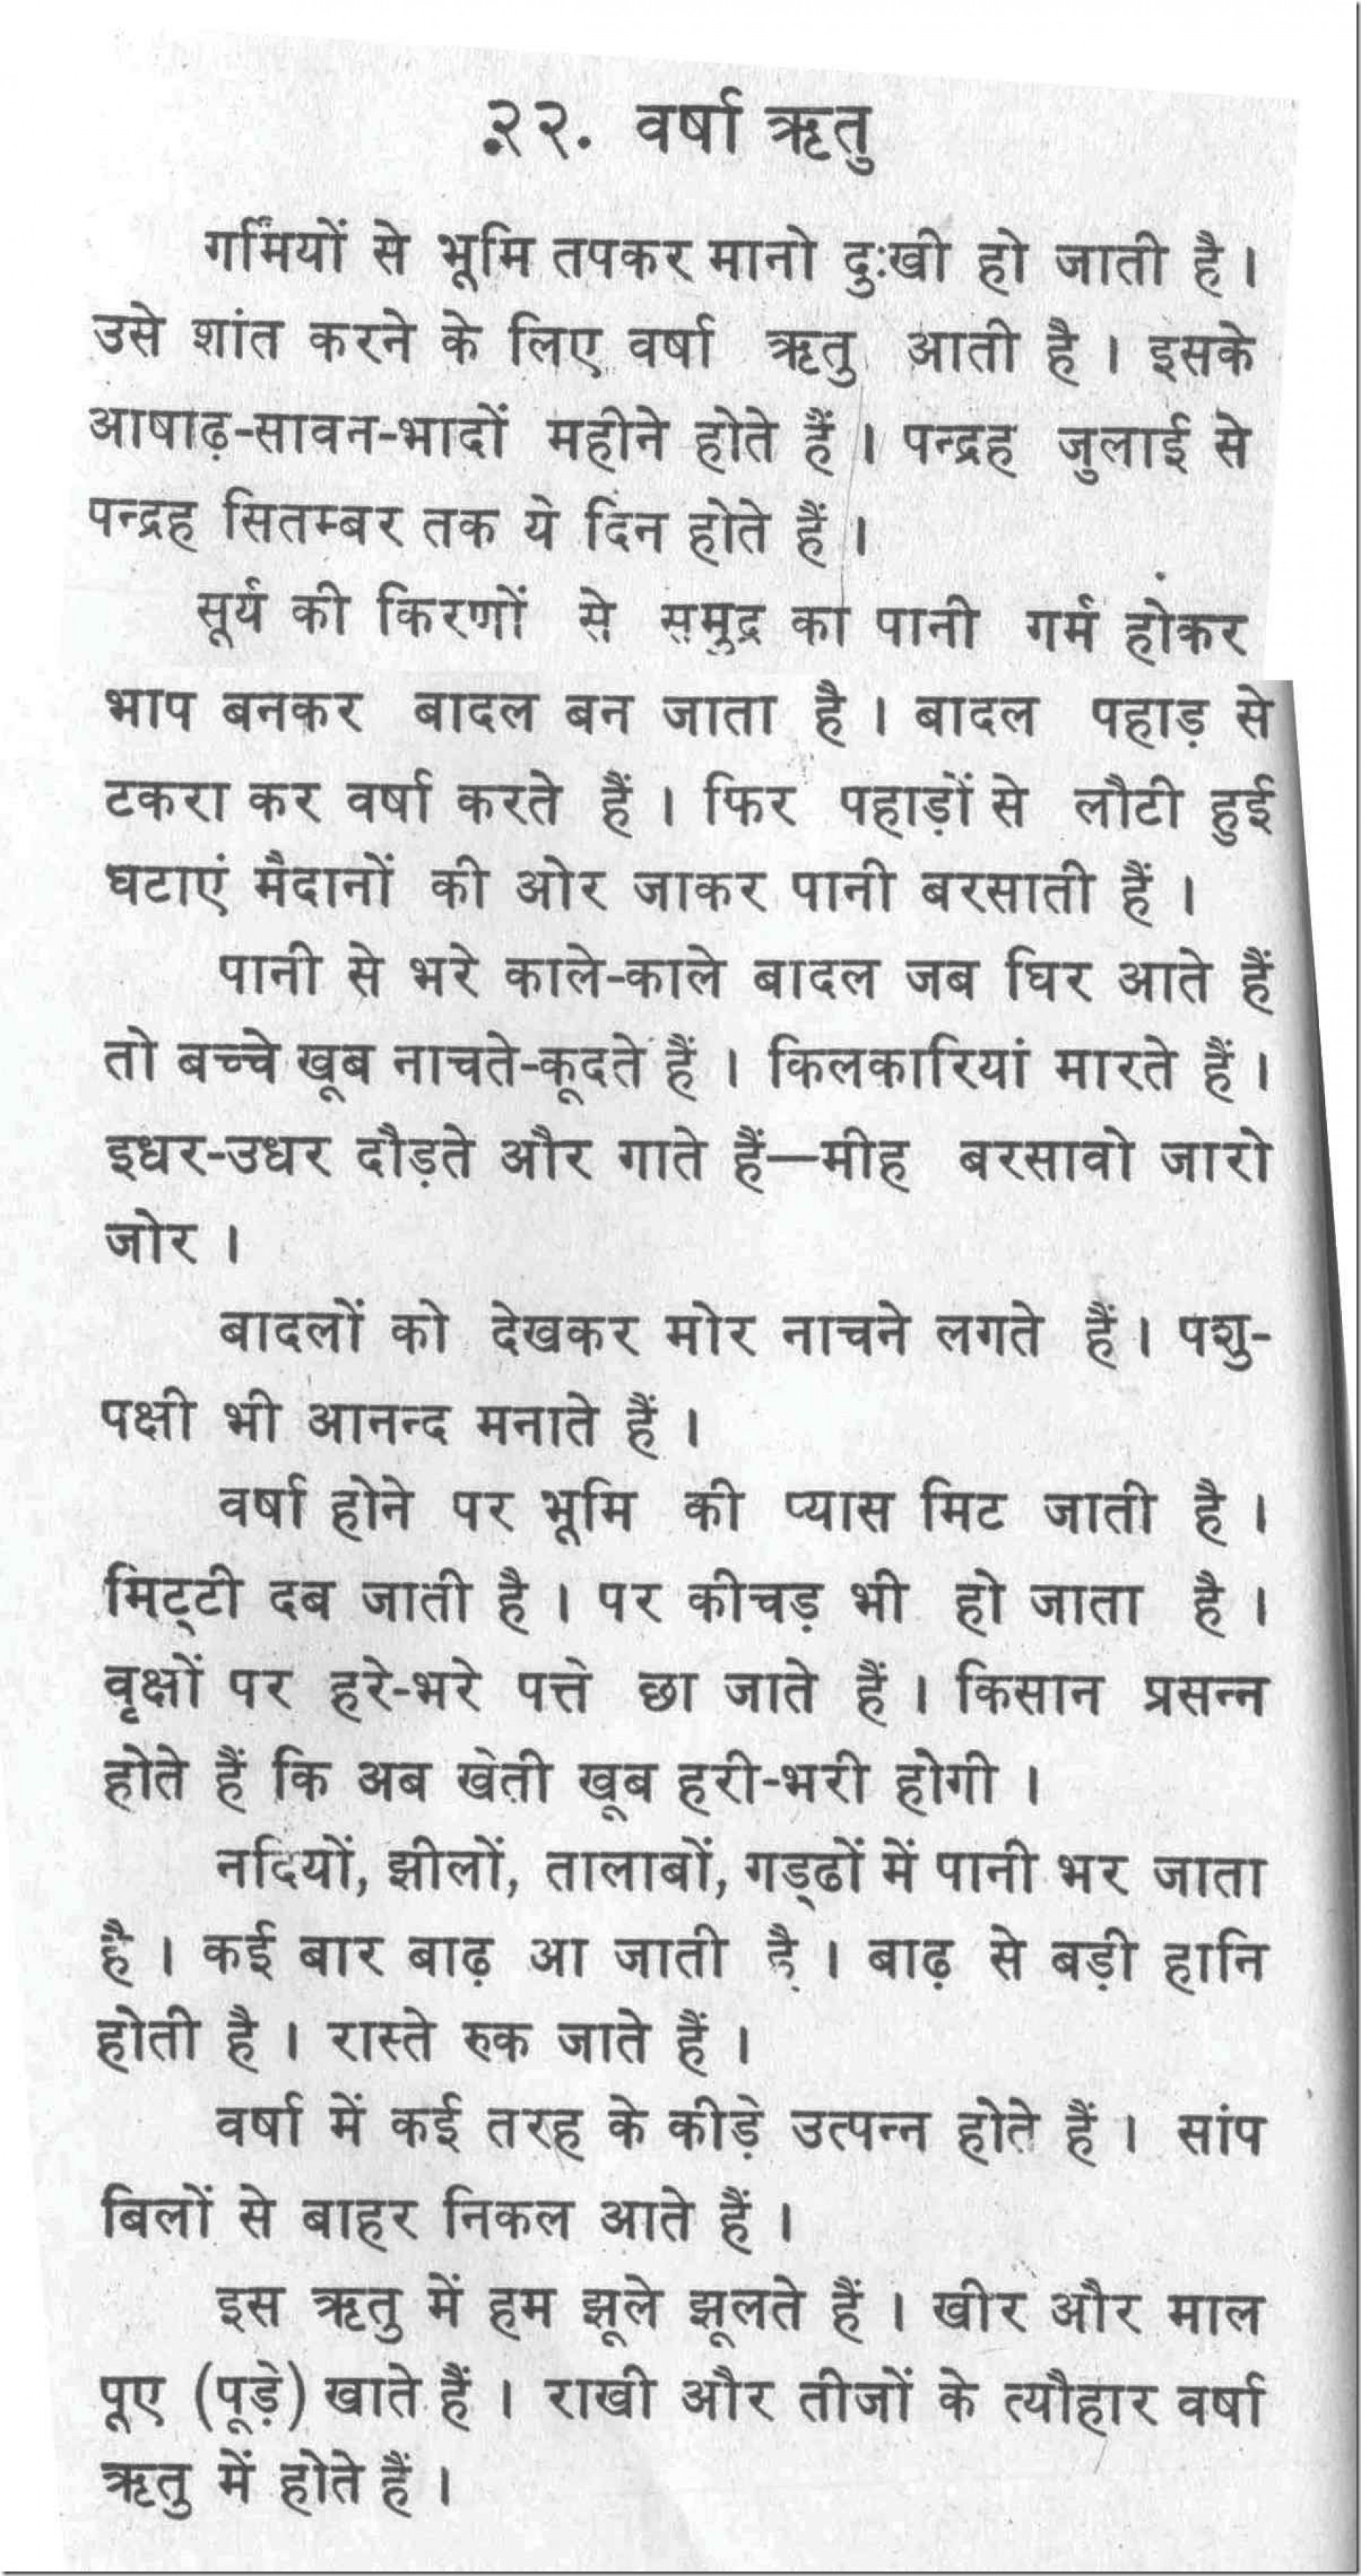 015 Summer Essay 1555027238 On Season In Hindi Unforgettable Vacation Class 2 Urdu Conclusion 1920